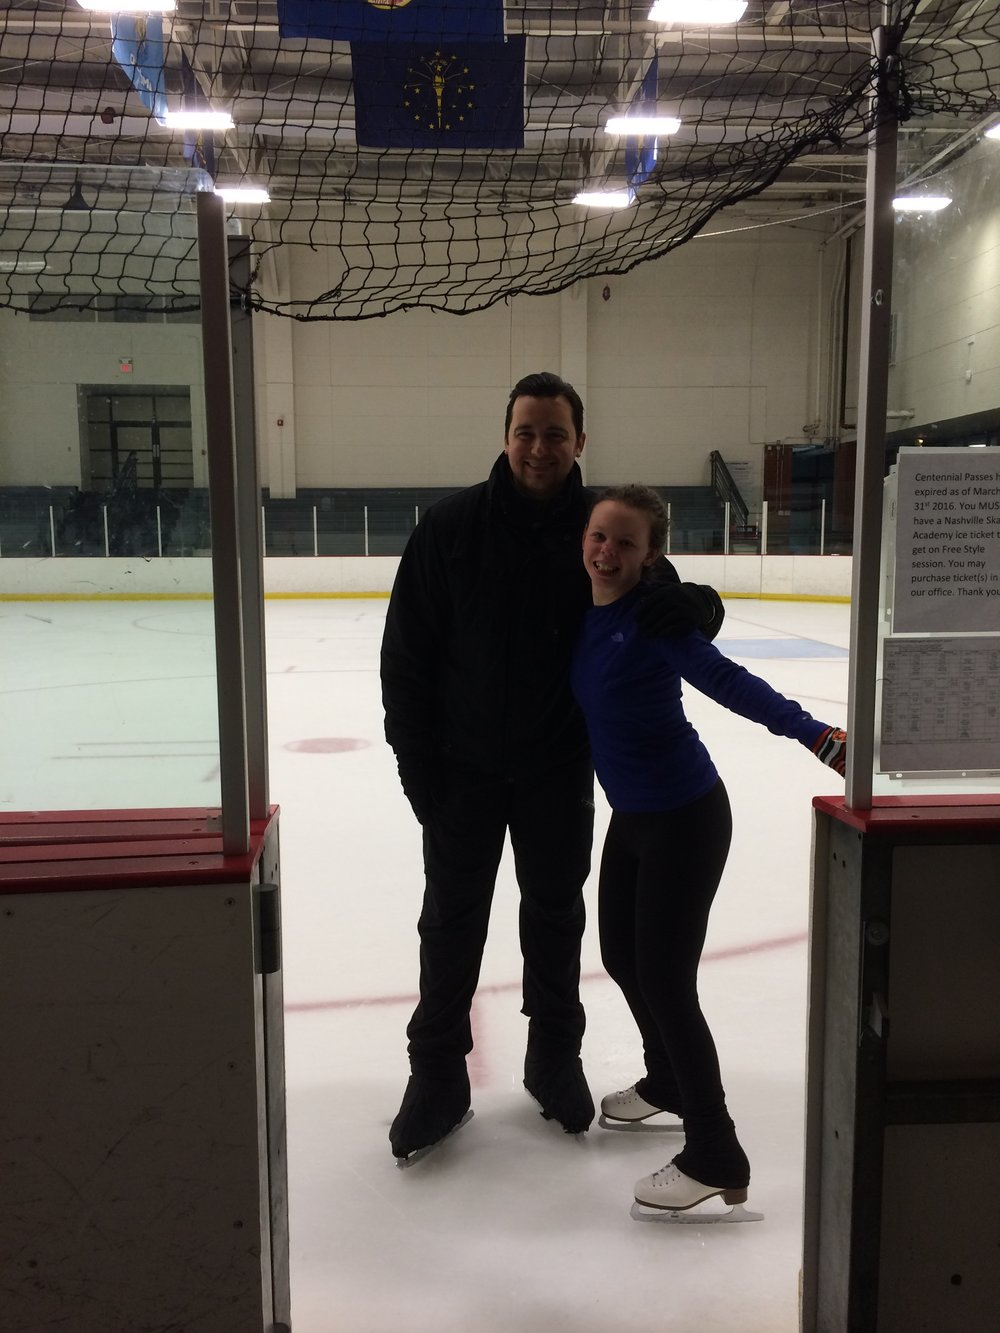 Speaking of athletics, have I mentioned that Chloe plans to continue figure skating while in college? We made time for her to try out Centennial Ice Rink during this visit.